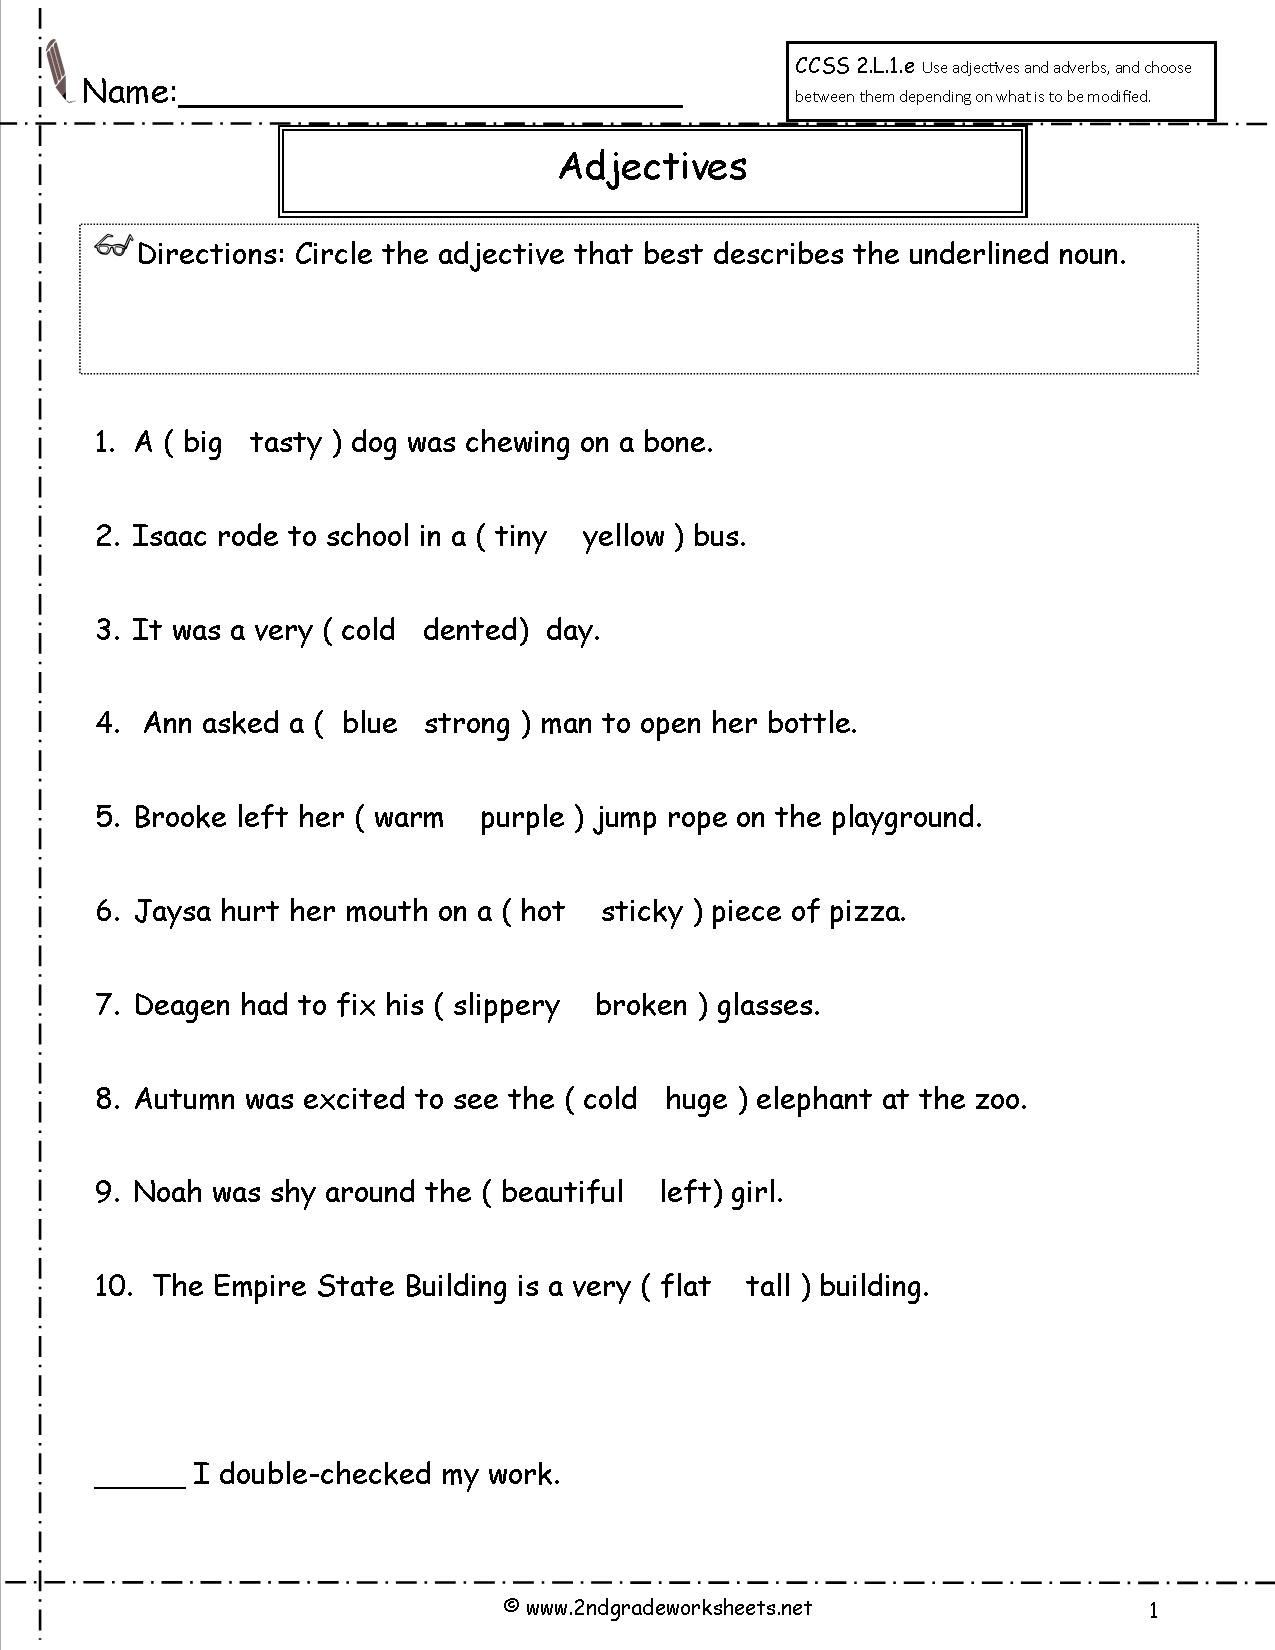 Relative Adverbs Worksheet 4th Grade Adjective Worksheets 4th Grade